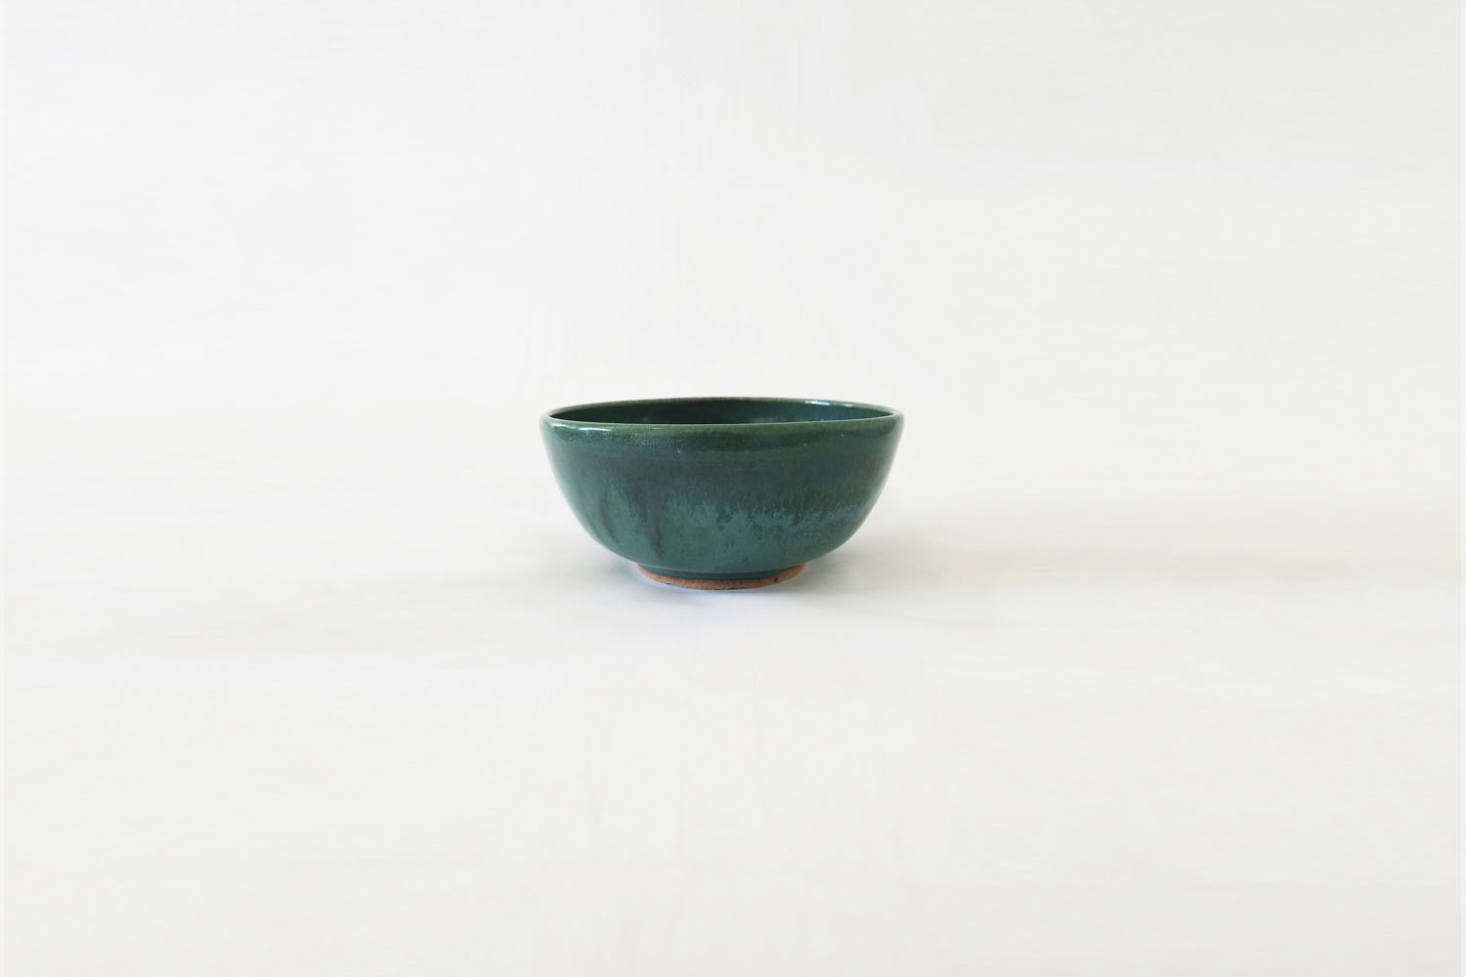 The handmade Dark Green Ceramic Bowl is $ from Etsy seller Avocation Design based in Los Angeles.